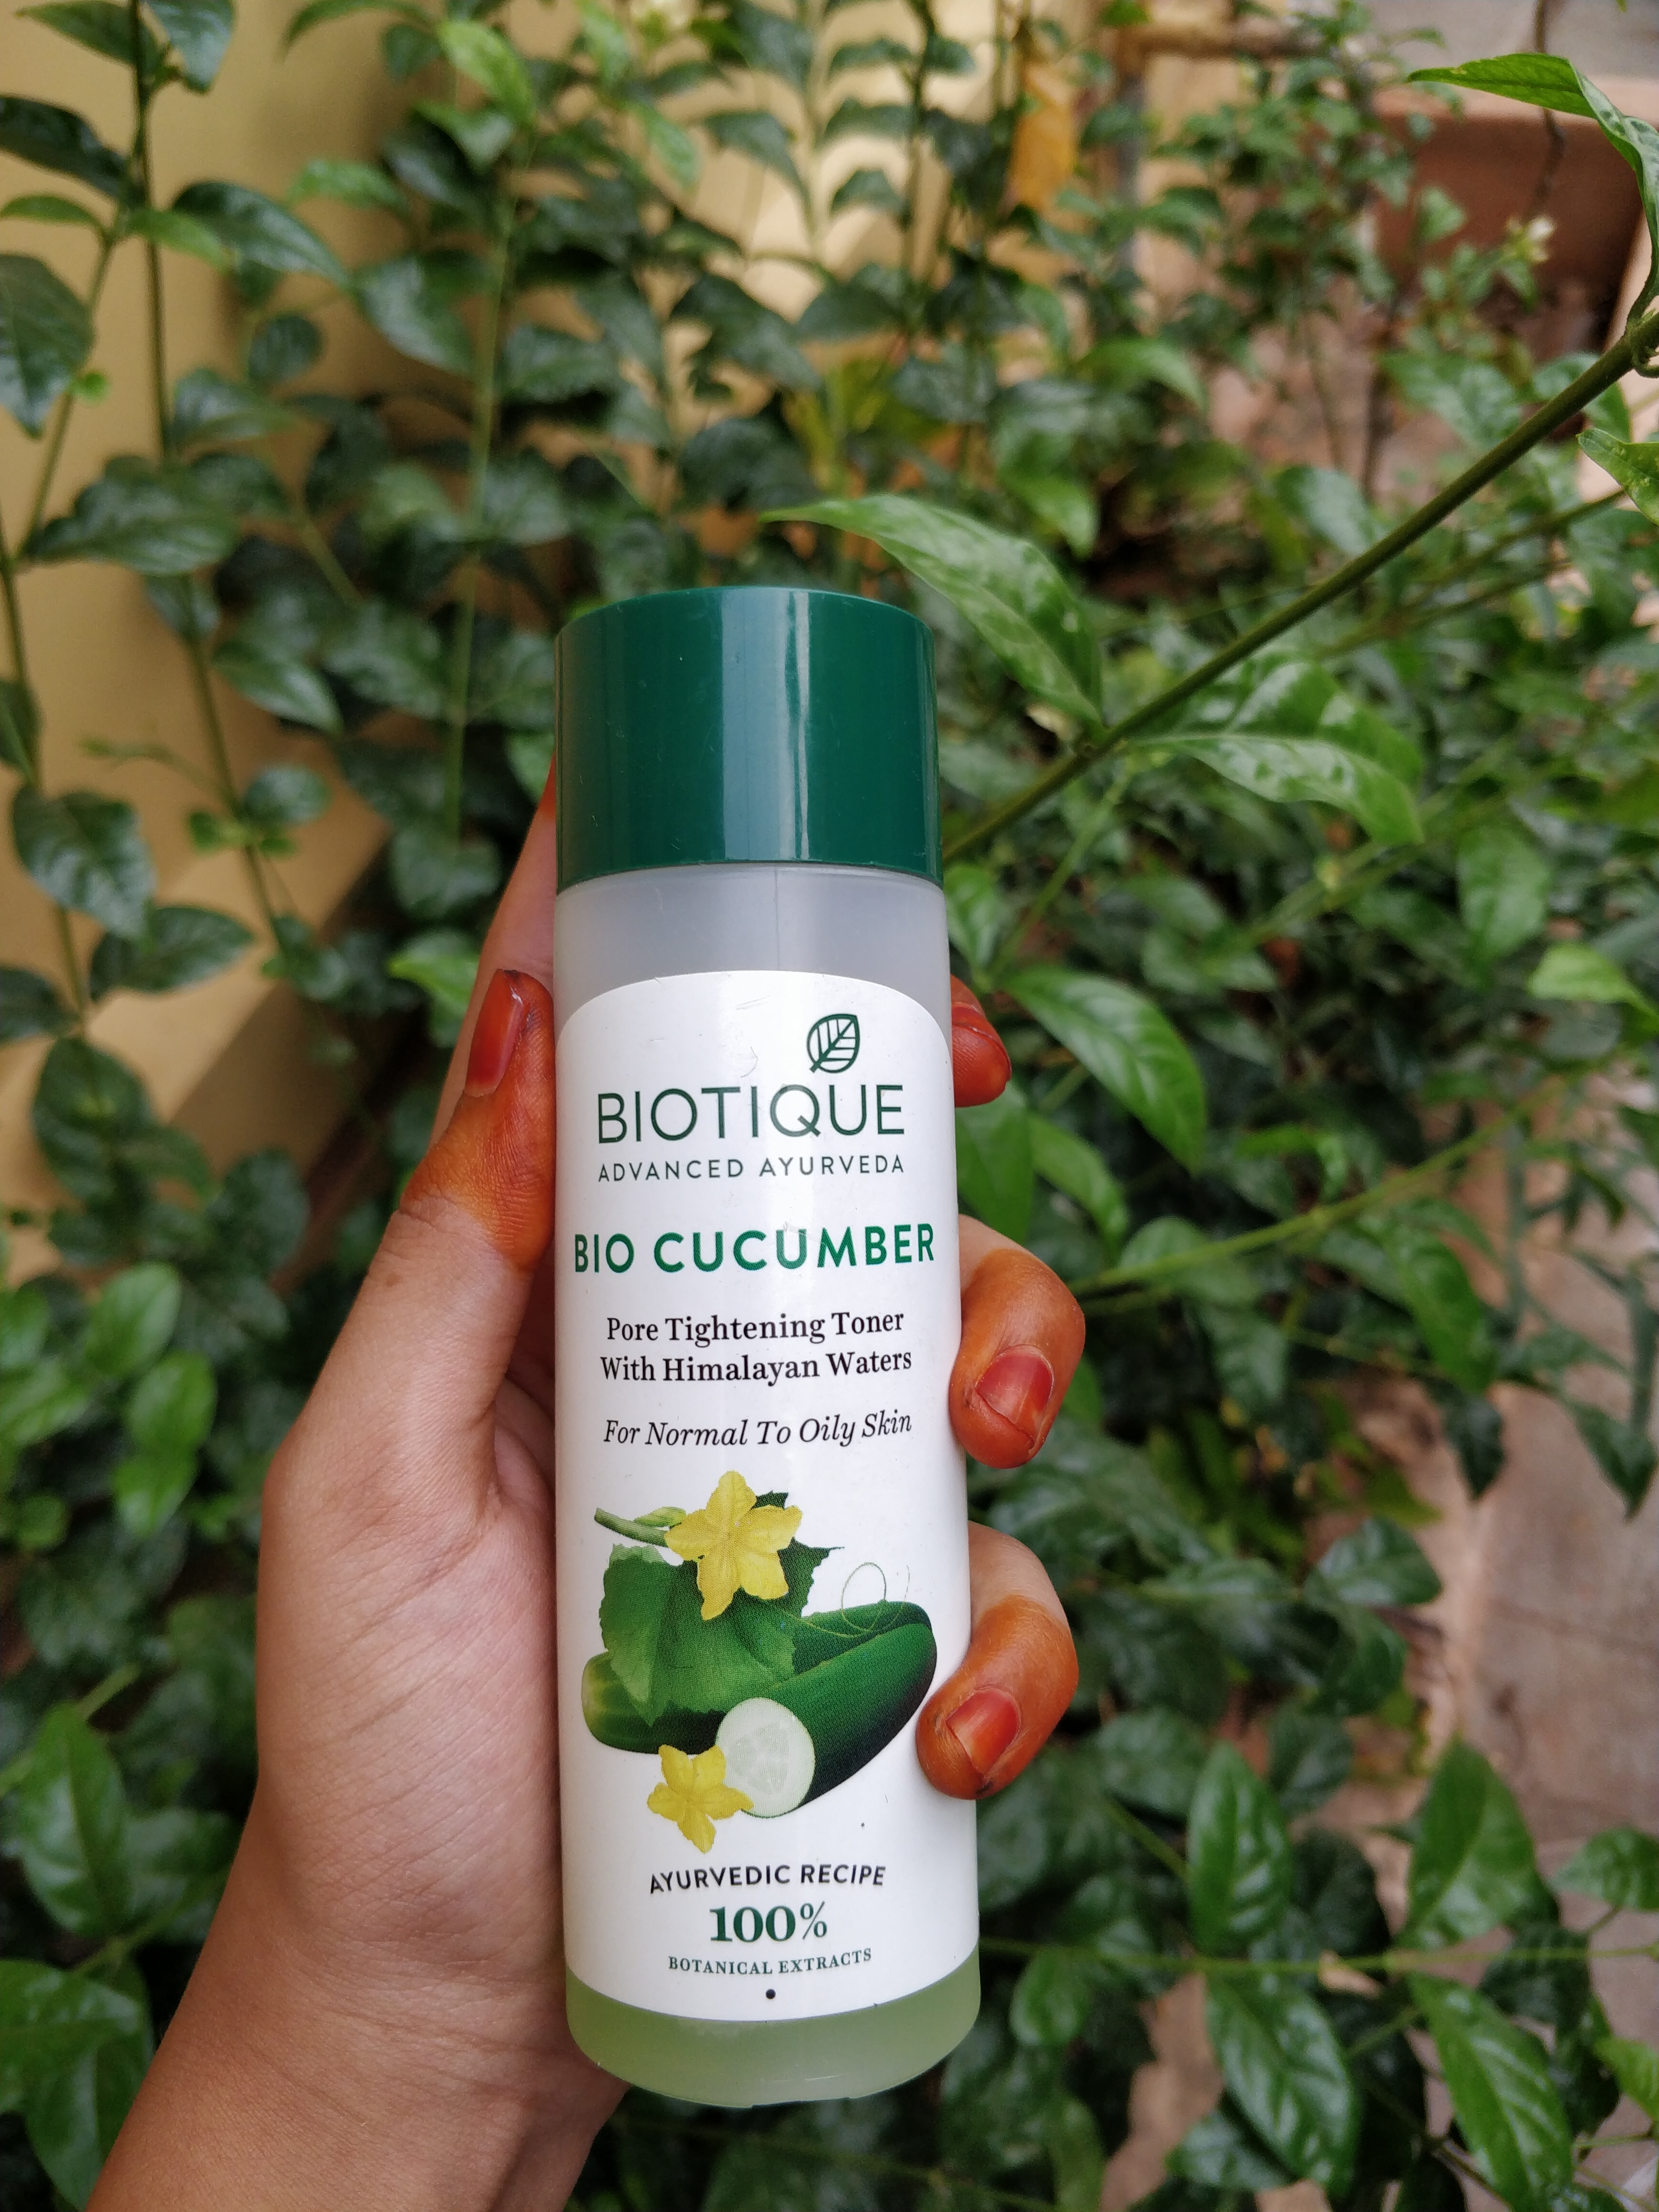 Biotique Bio Cucumber Pore Tightening Toner-Must-try for beginners-By sri._.reviwer